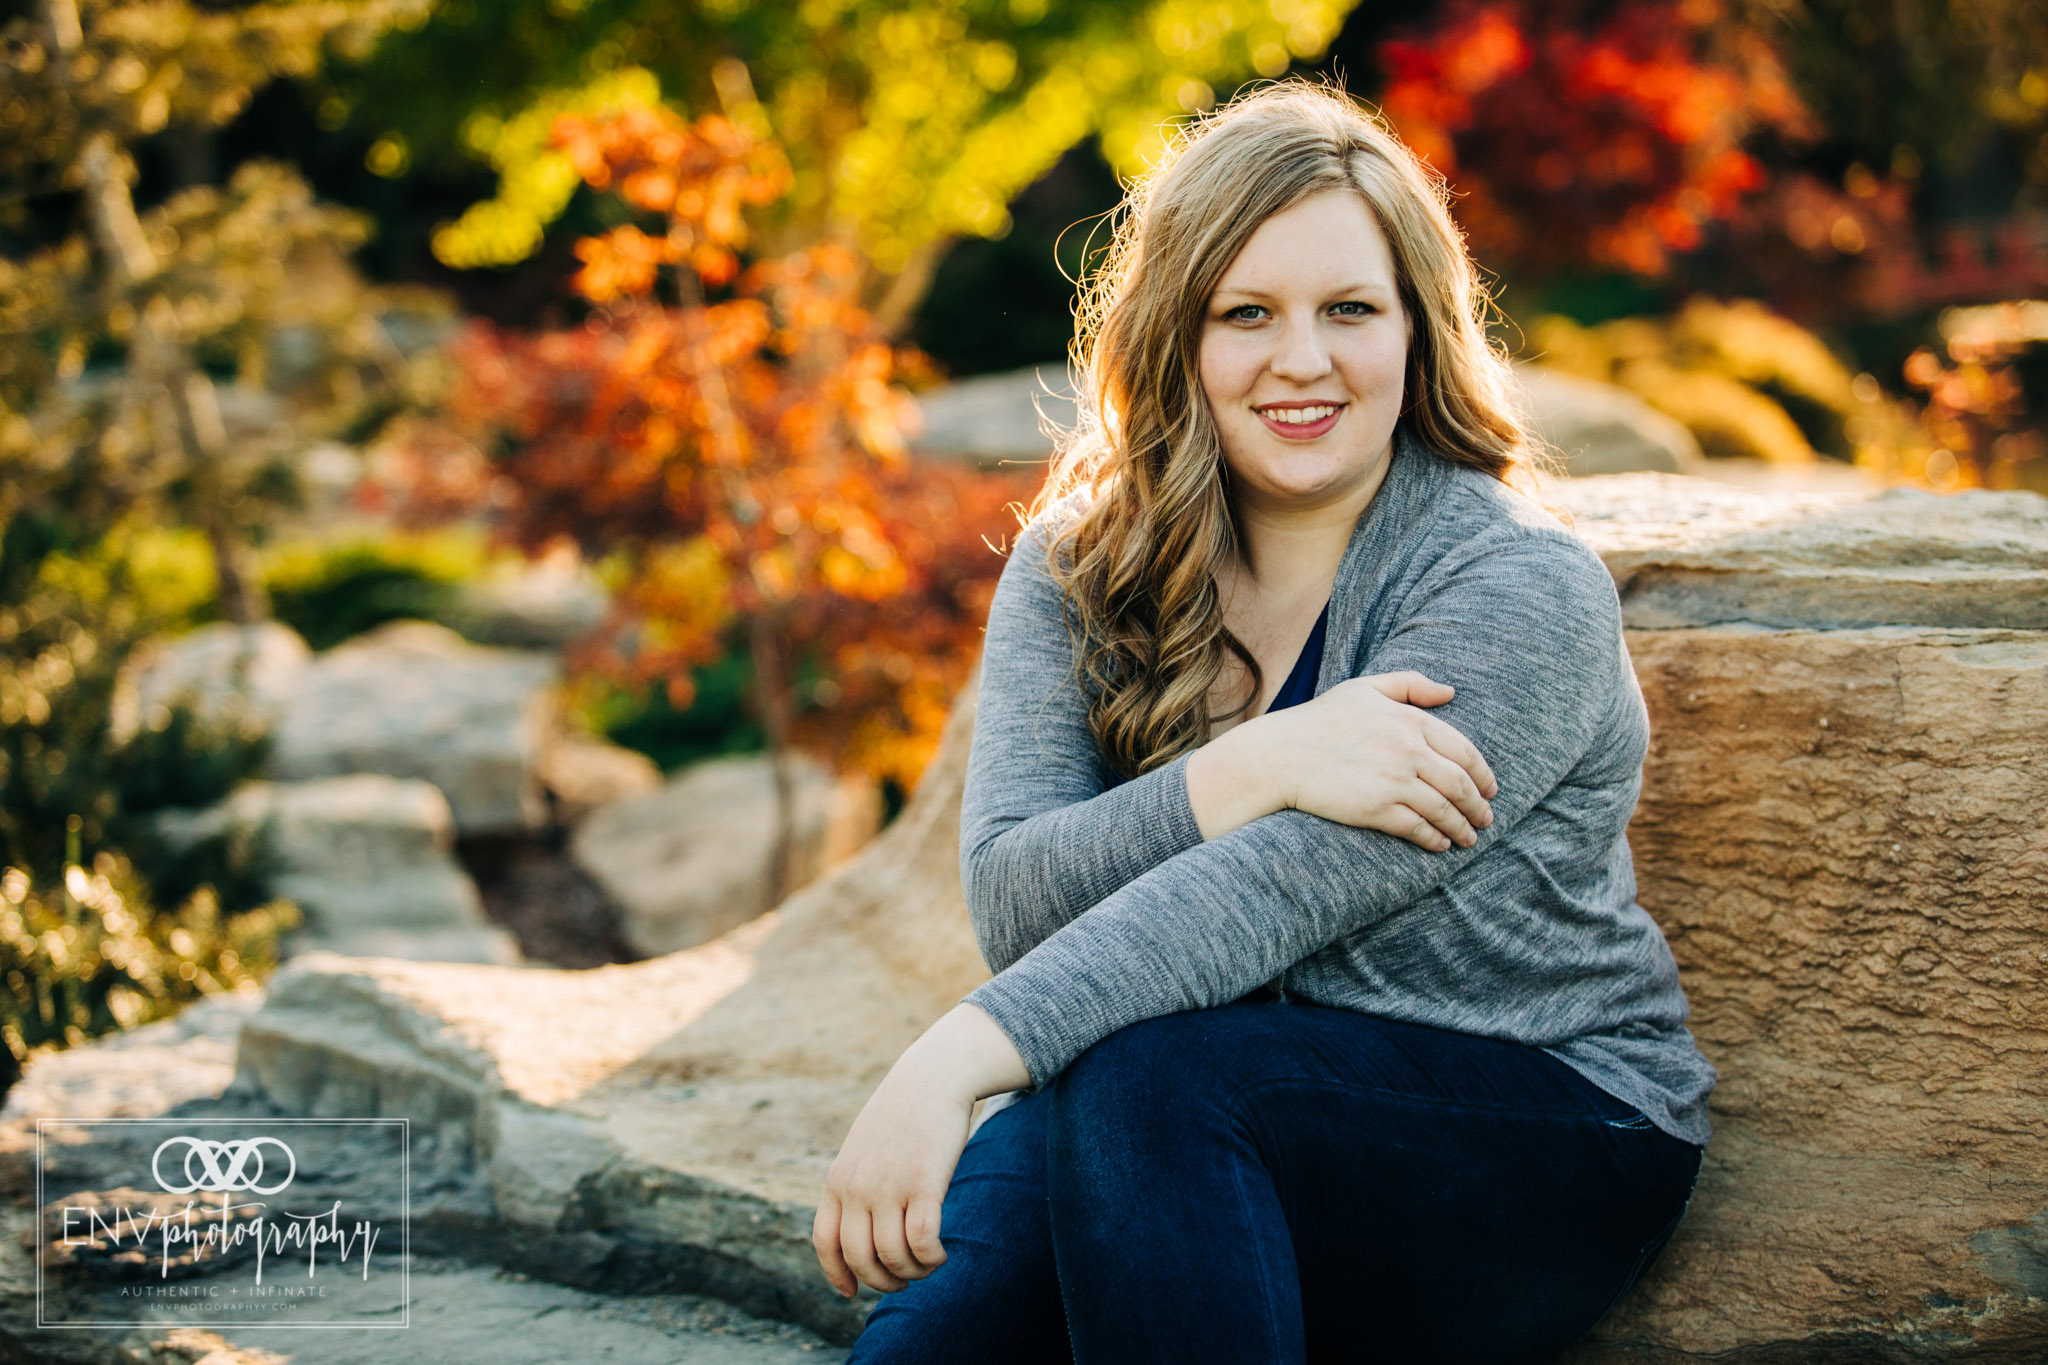 mount vernon columbus ohio senior portrait photographer (16).jpg